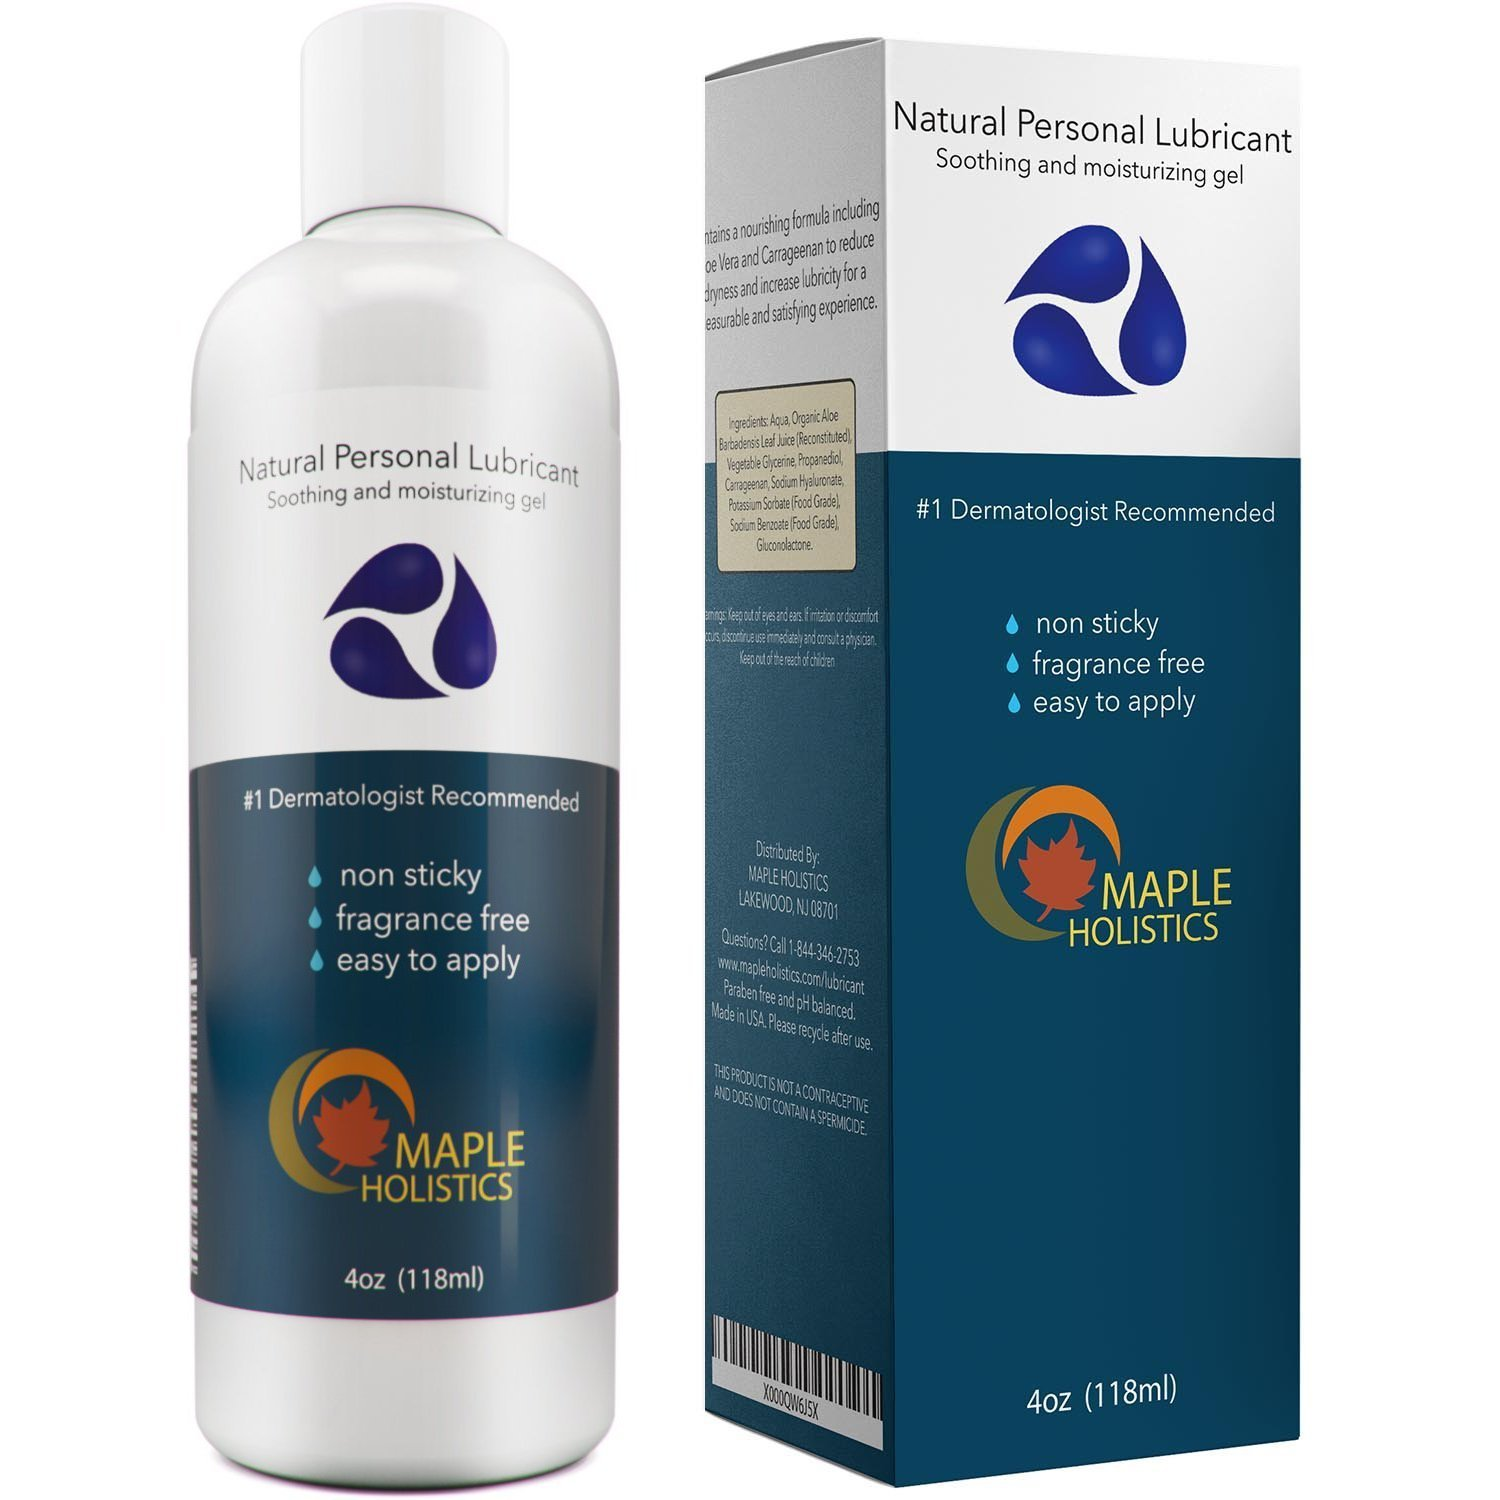 Natural Personal Lubricant for Sensitive Skin - Women and Men - Water Based Lube with Aloe Vera and Carrageenan - Paraben-free with Squeeze Tube Technology - 4oz - 100% Guaranteed By Maple Holistics